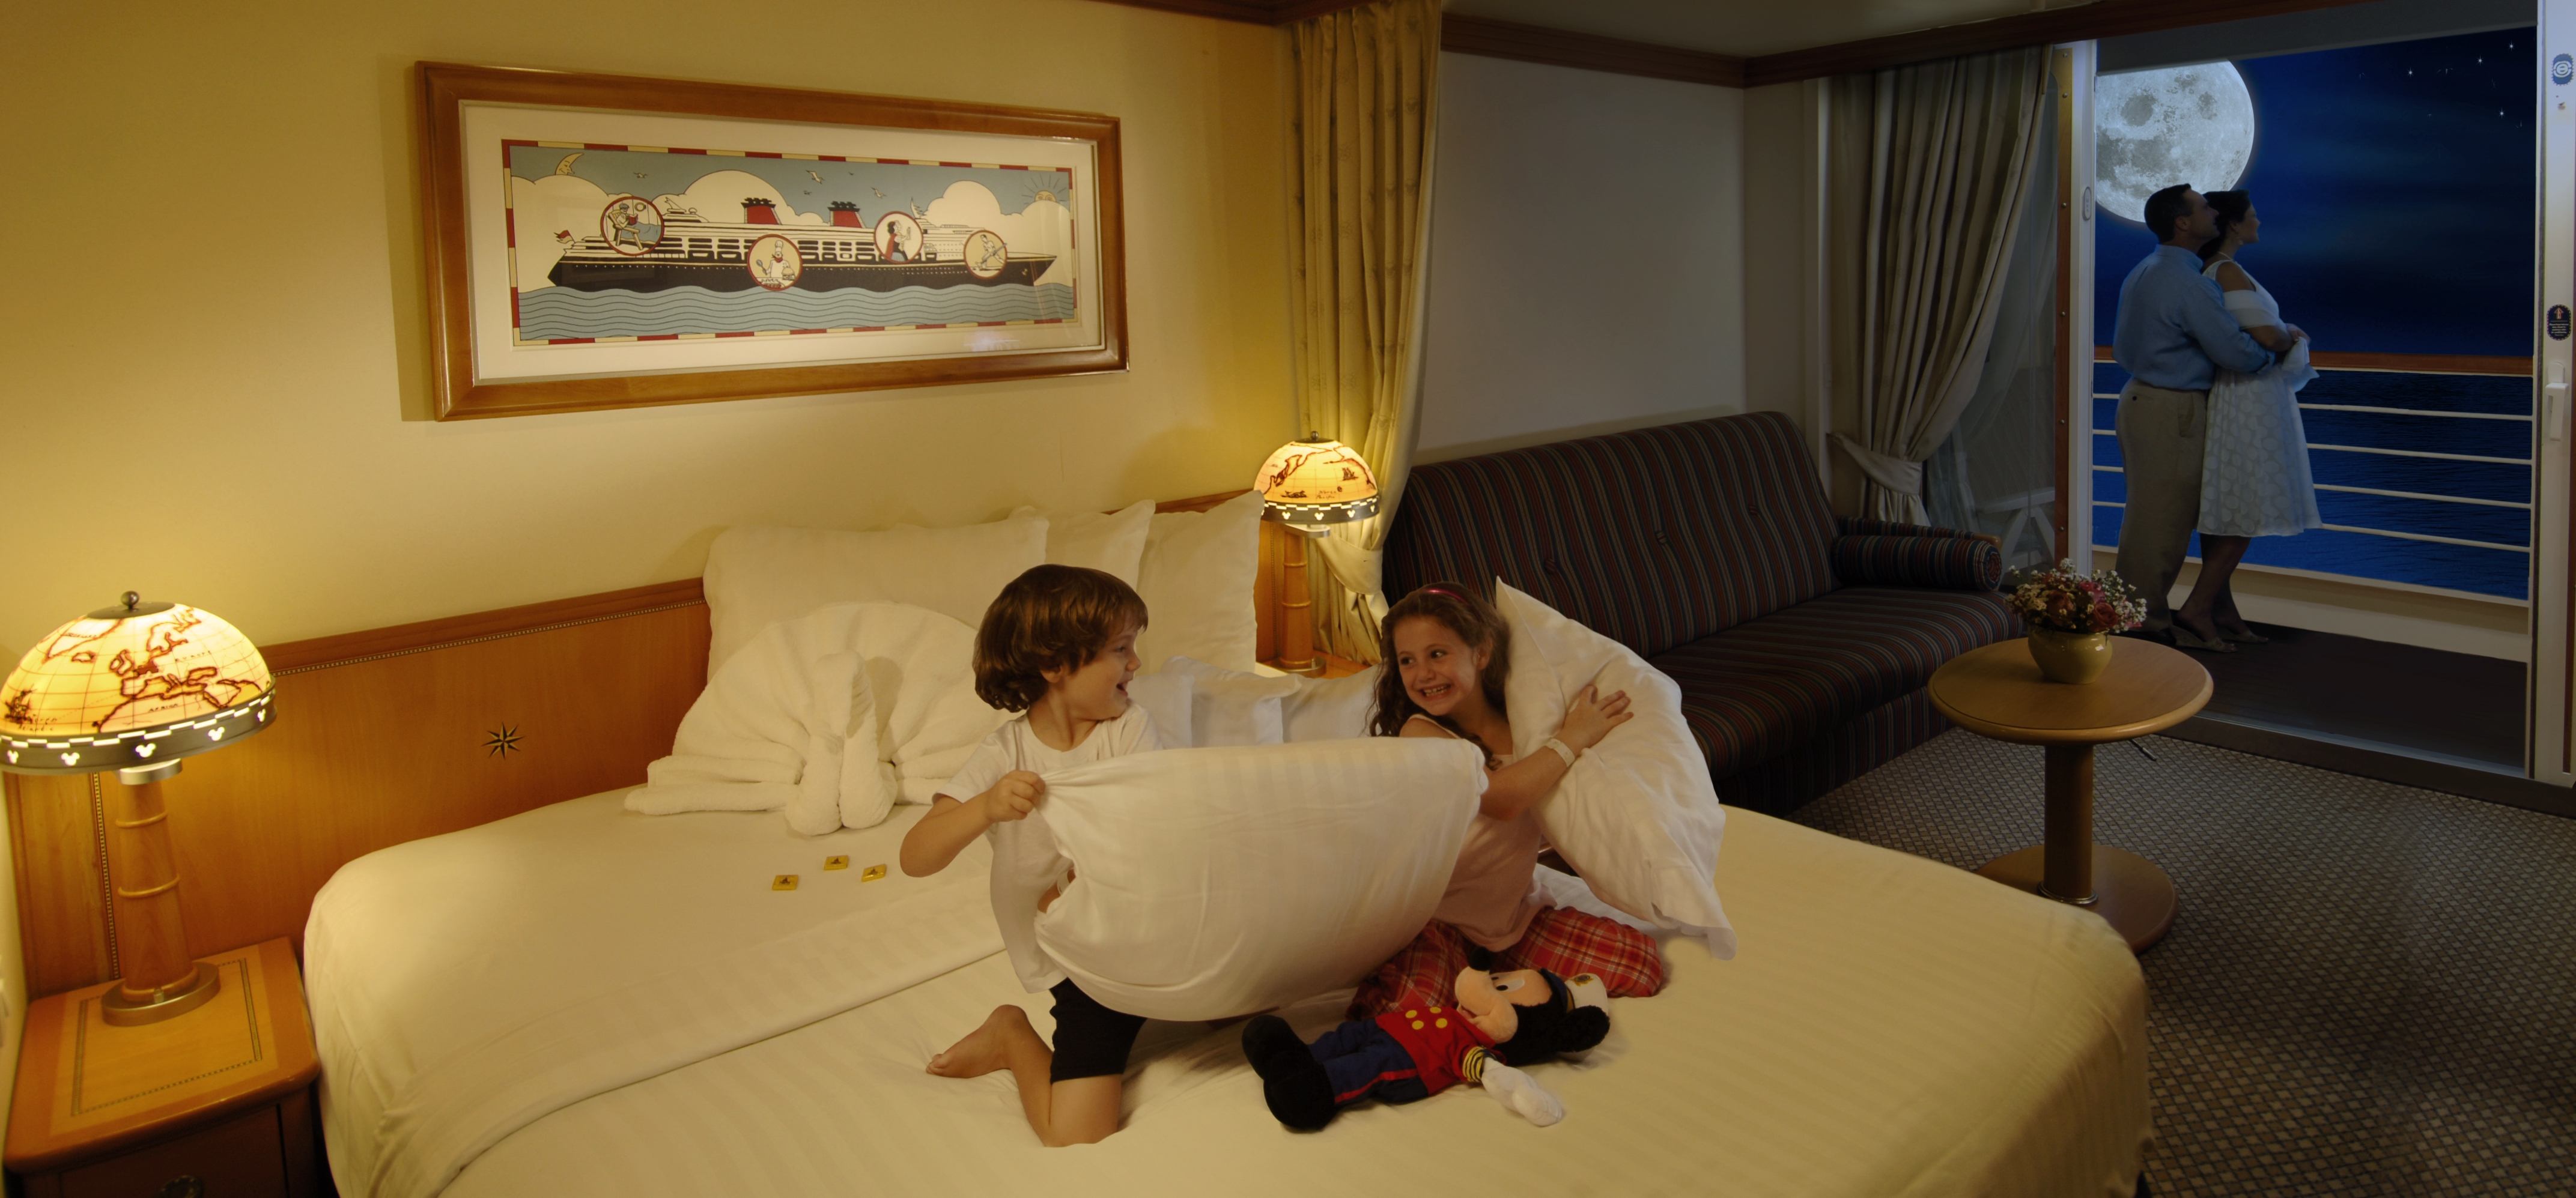 Disney Cruise Line Accommodation Category 5, 6 & 7 Deluxe Stateroom with Verandah.JPG